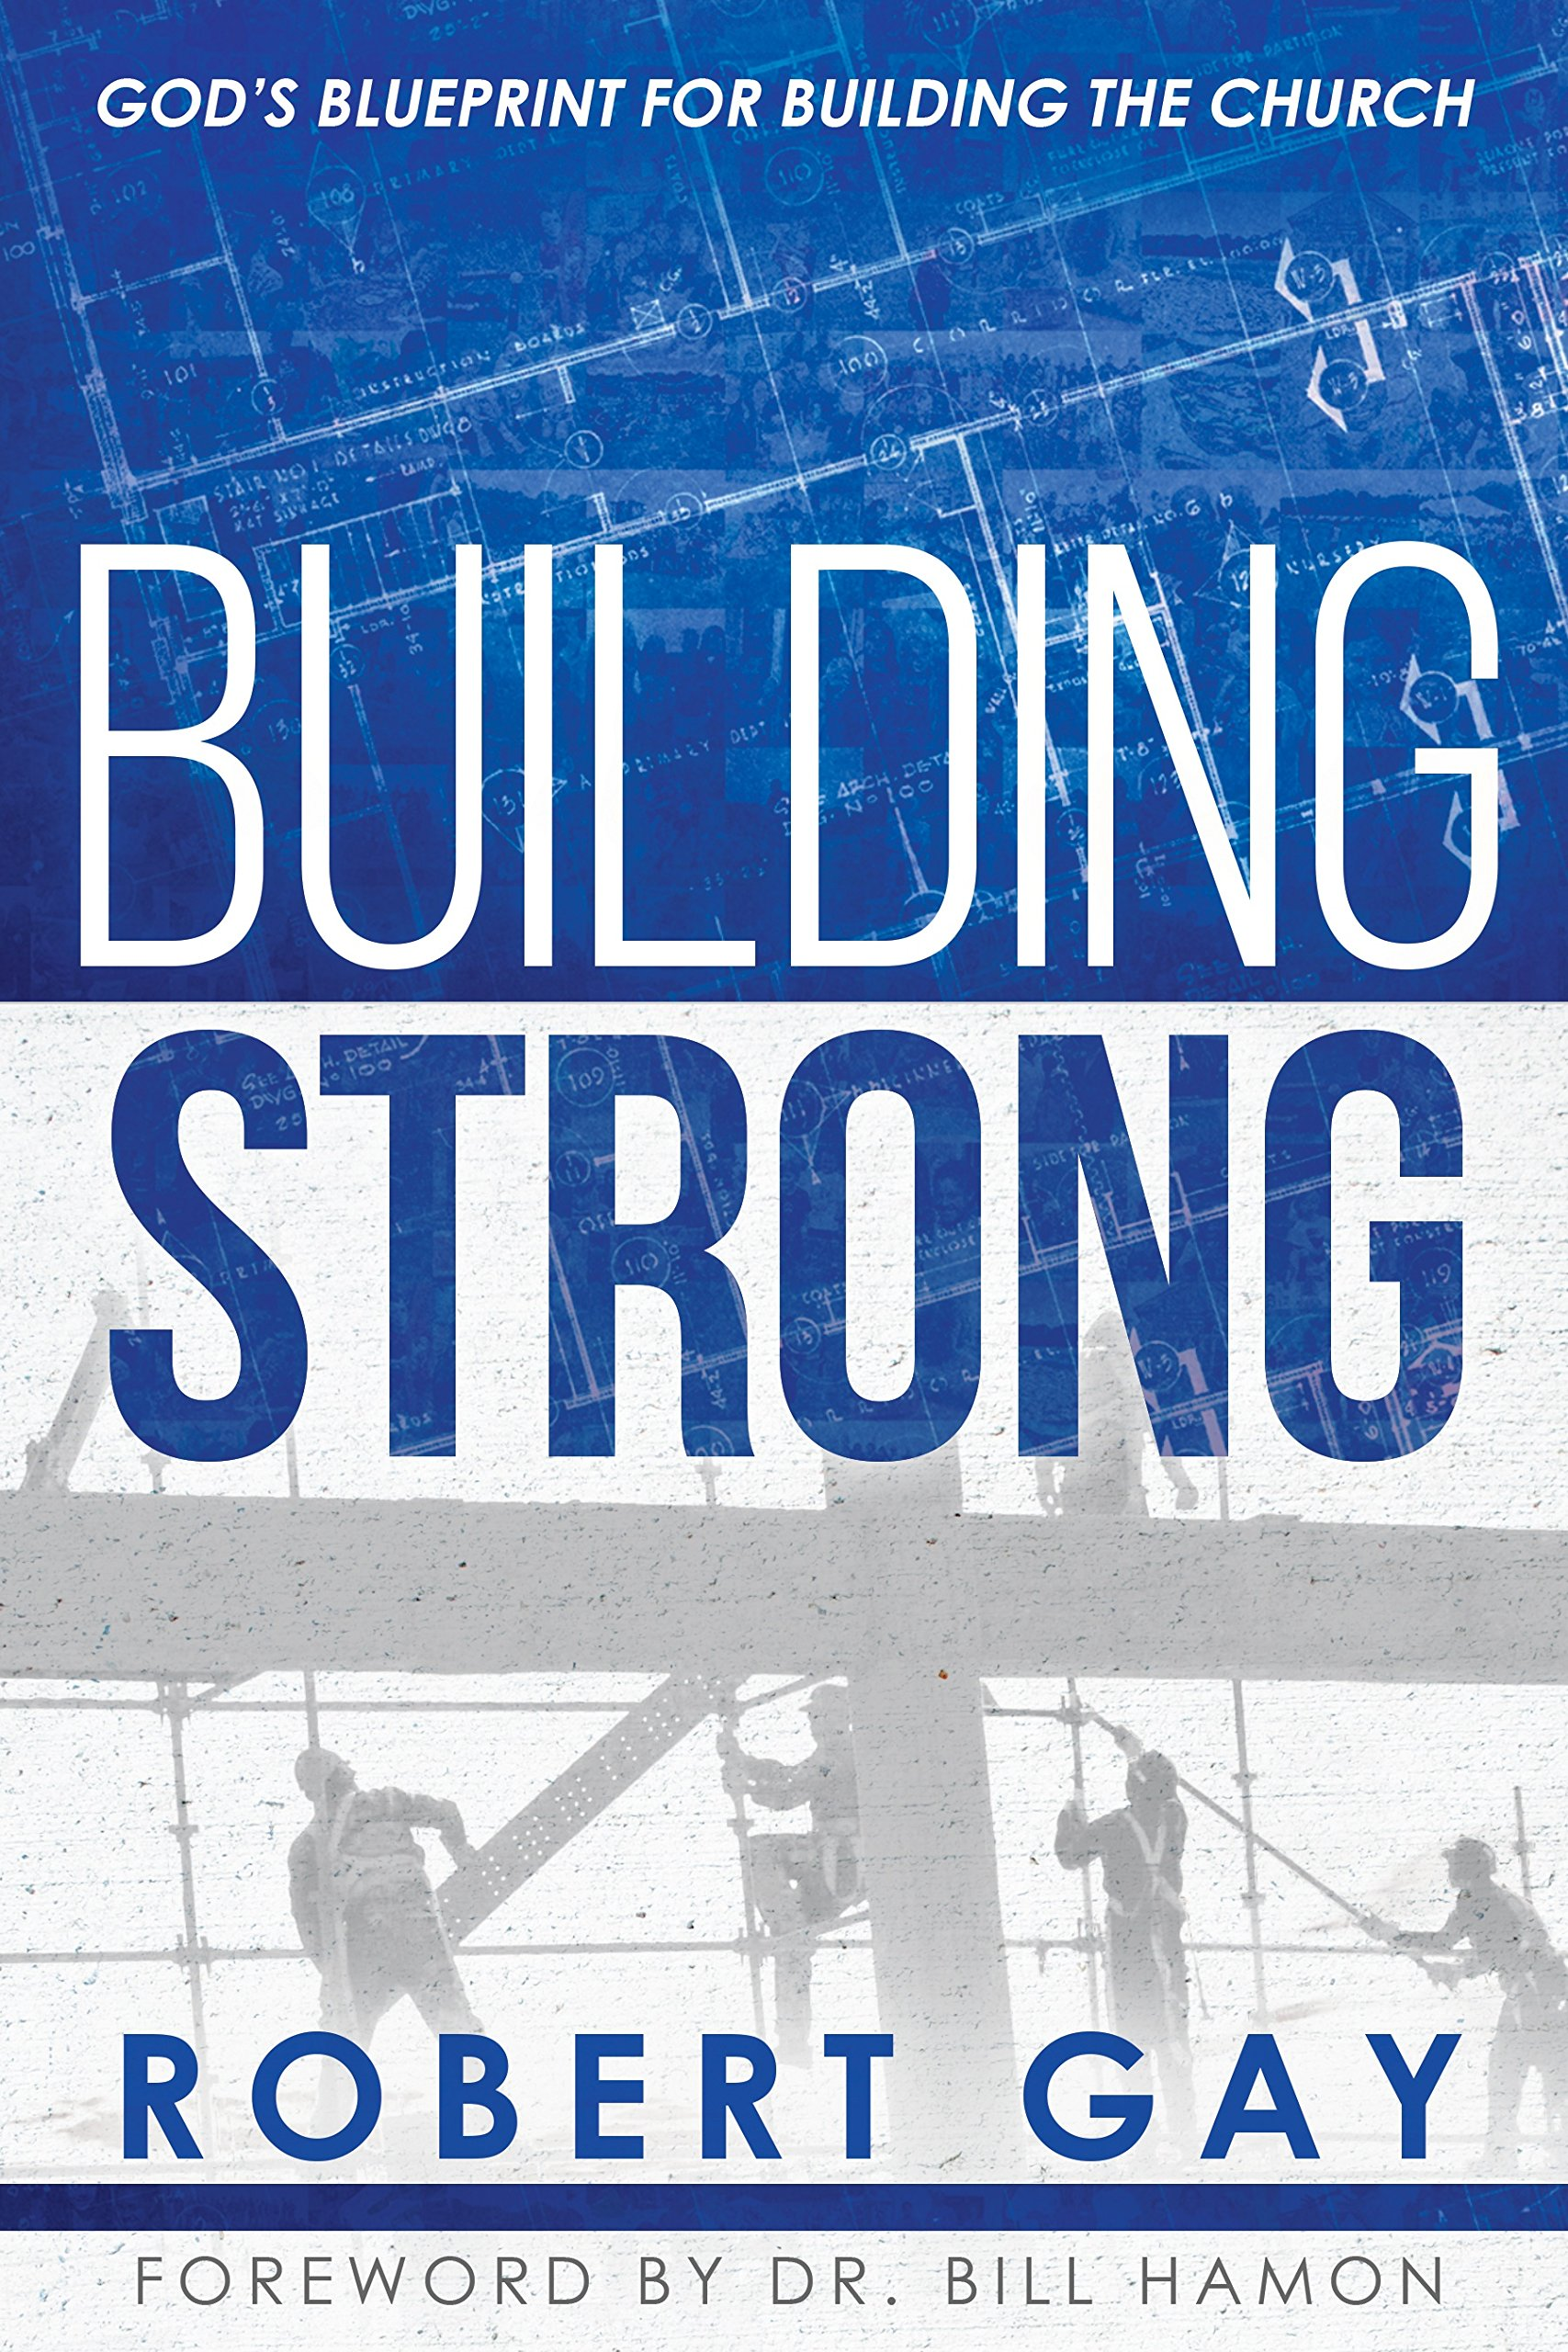 Building strong gods blueprint for building the church robert gay building strong gods blueprint for building the church robert gay 9781602730892 amazon books malvernweather